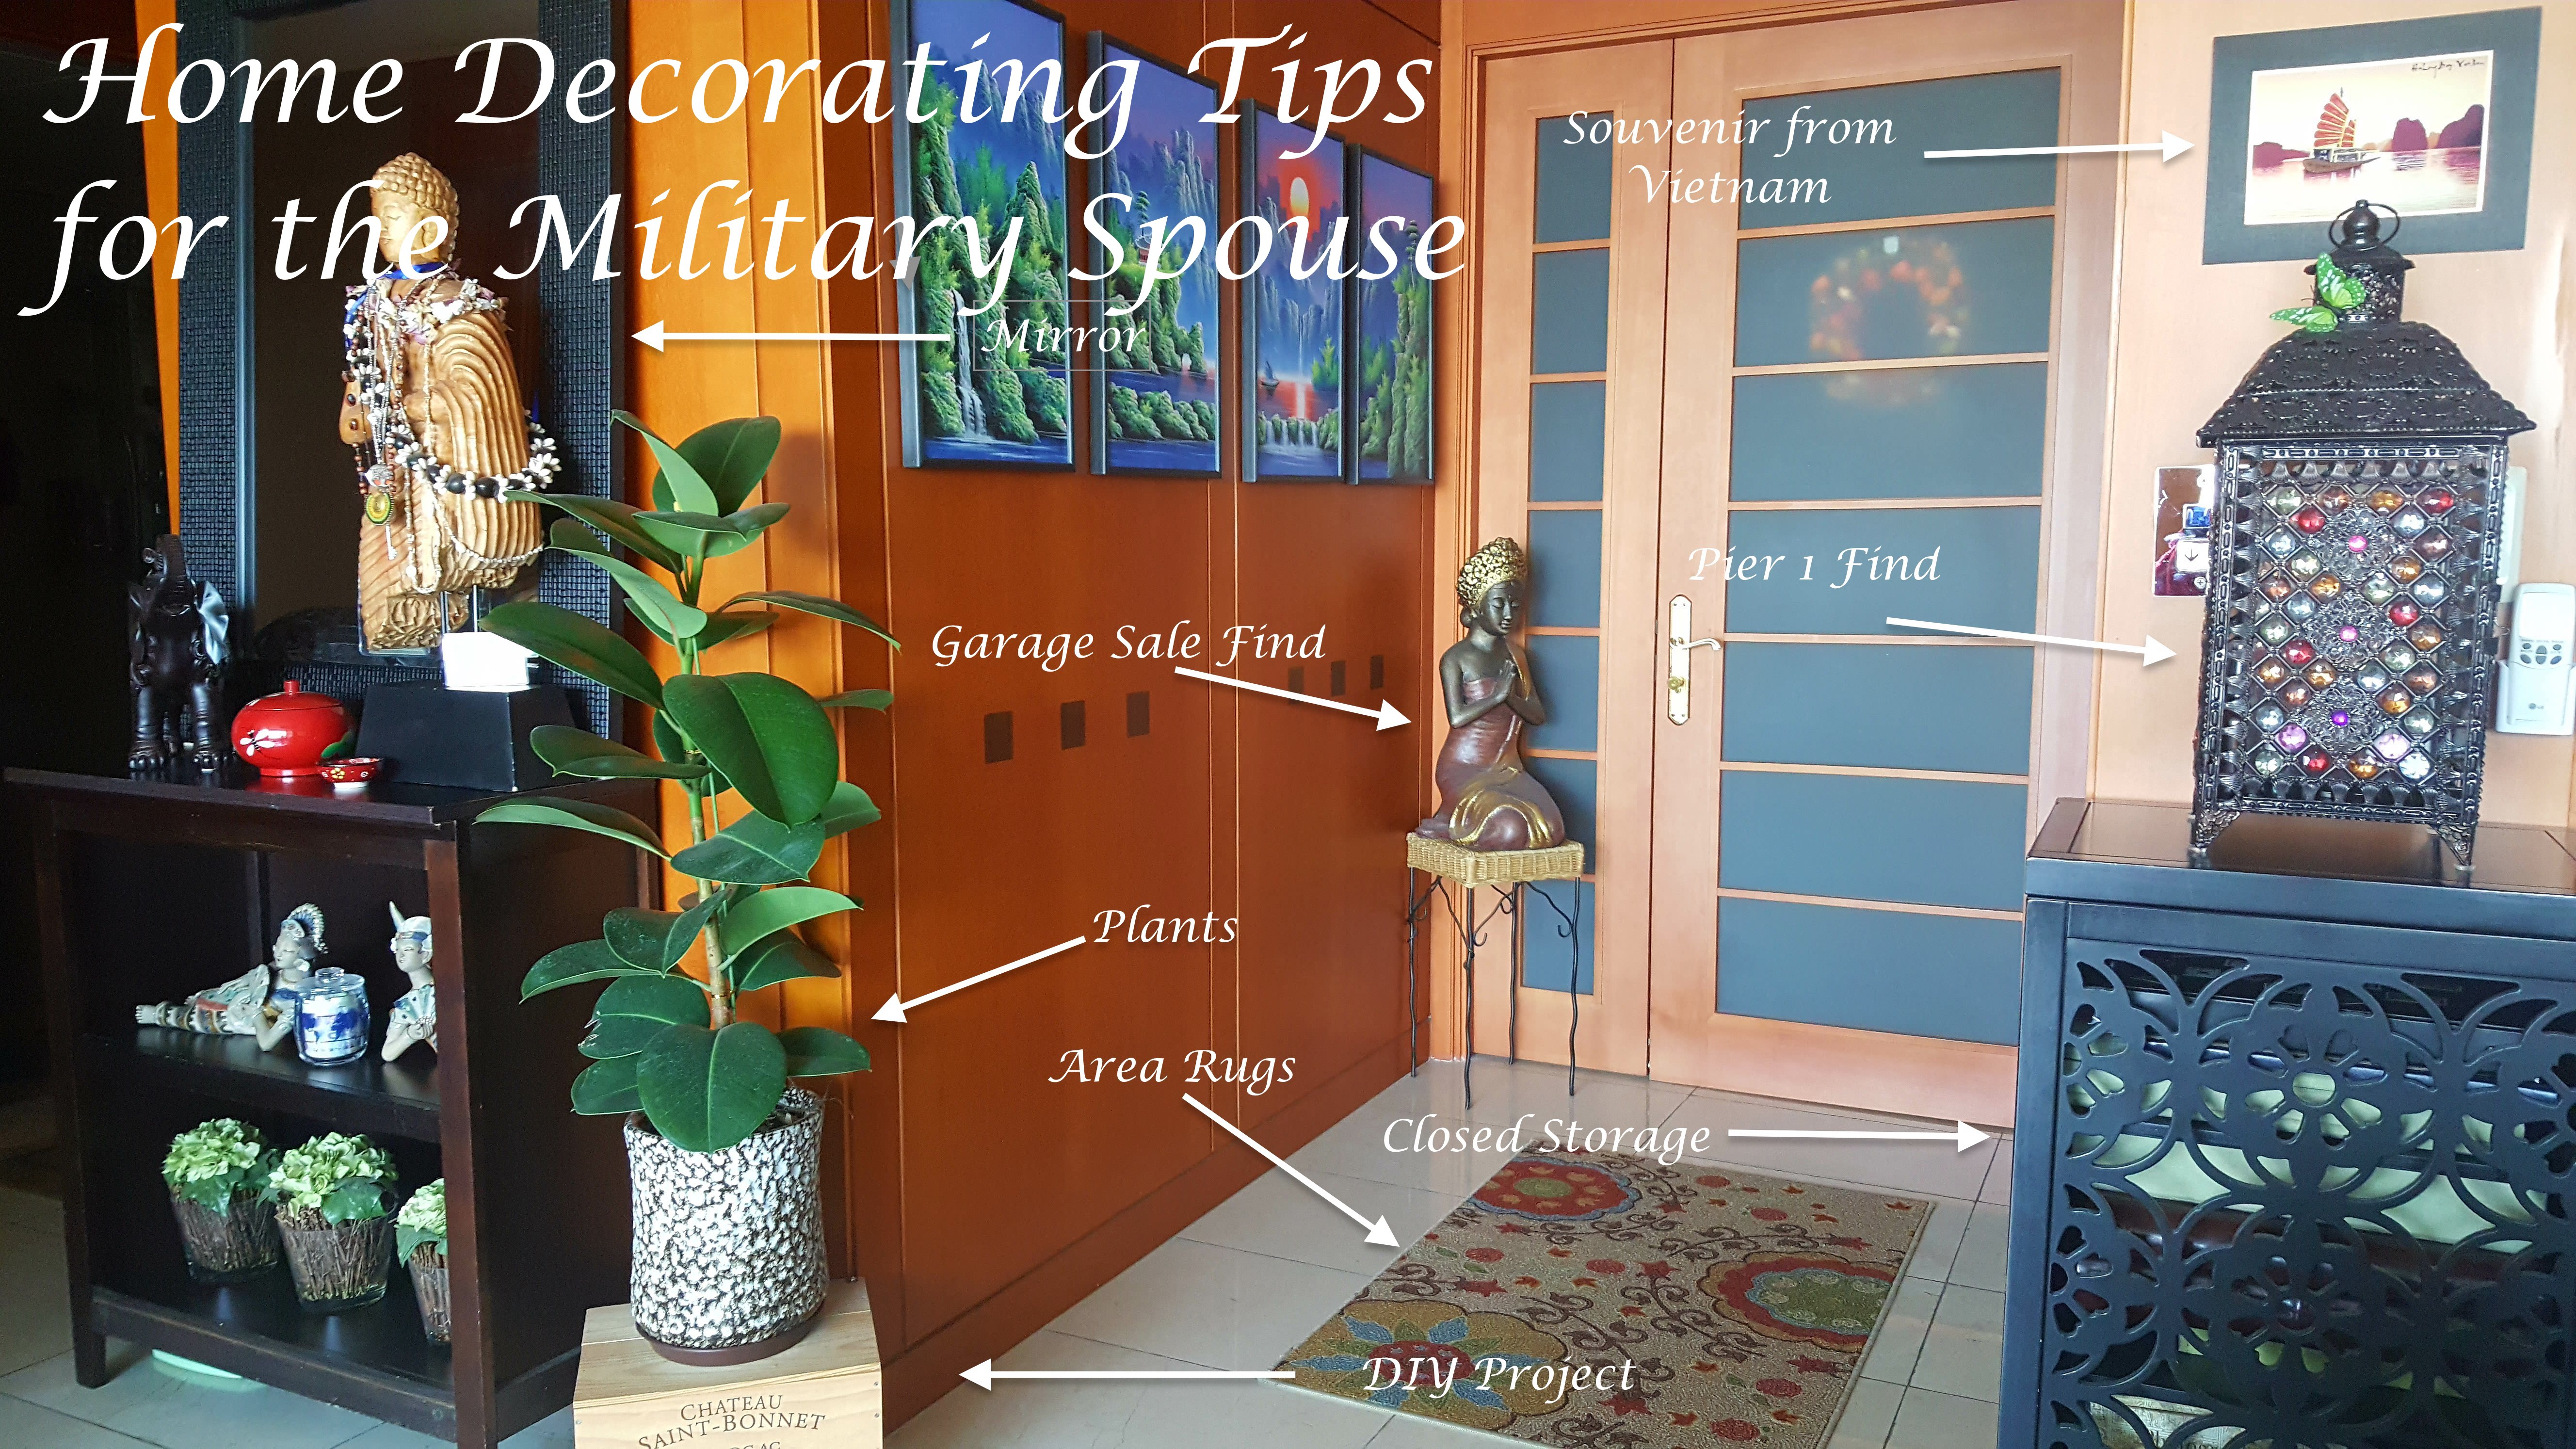 Home Decorating Tips for the Military Spouse | duffelbagspouse ...